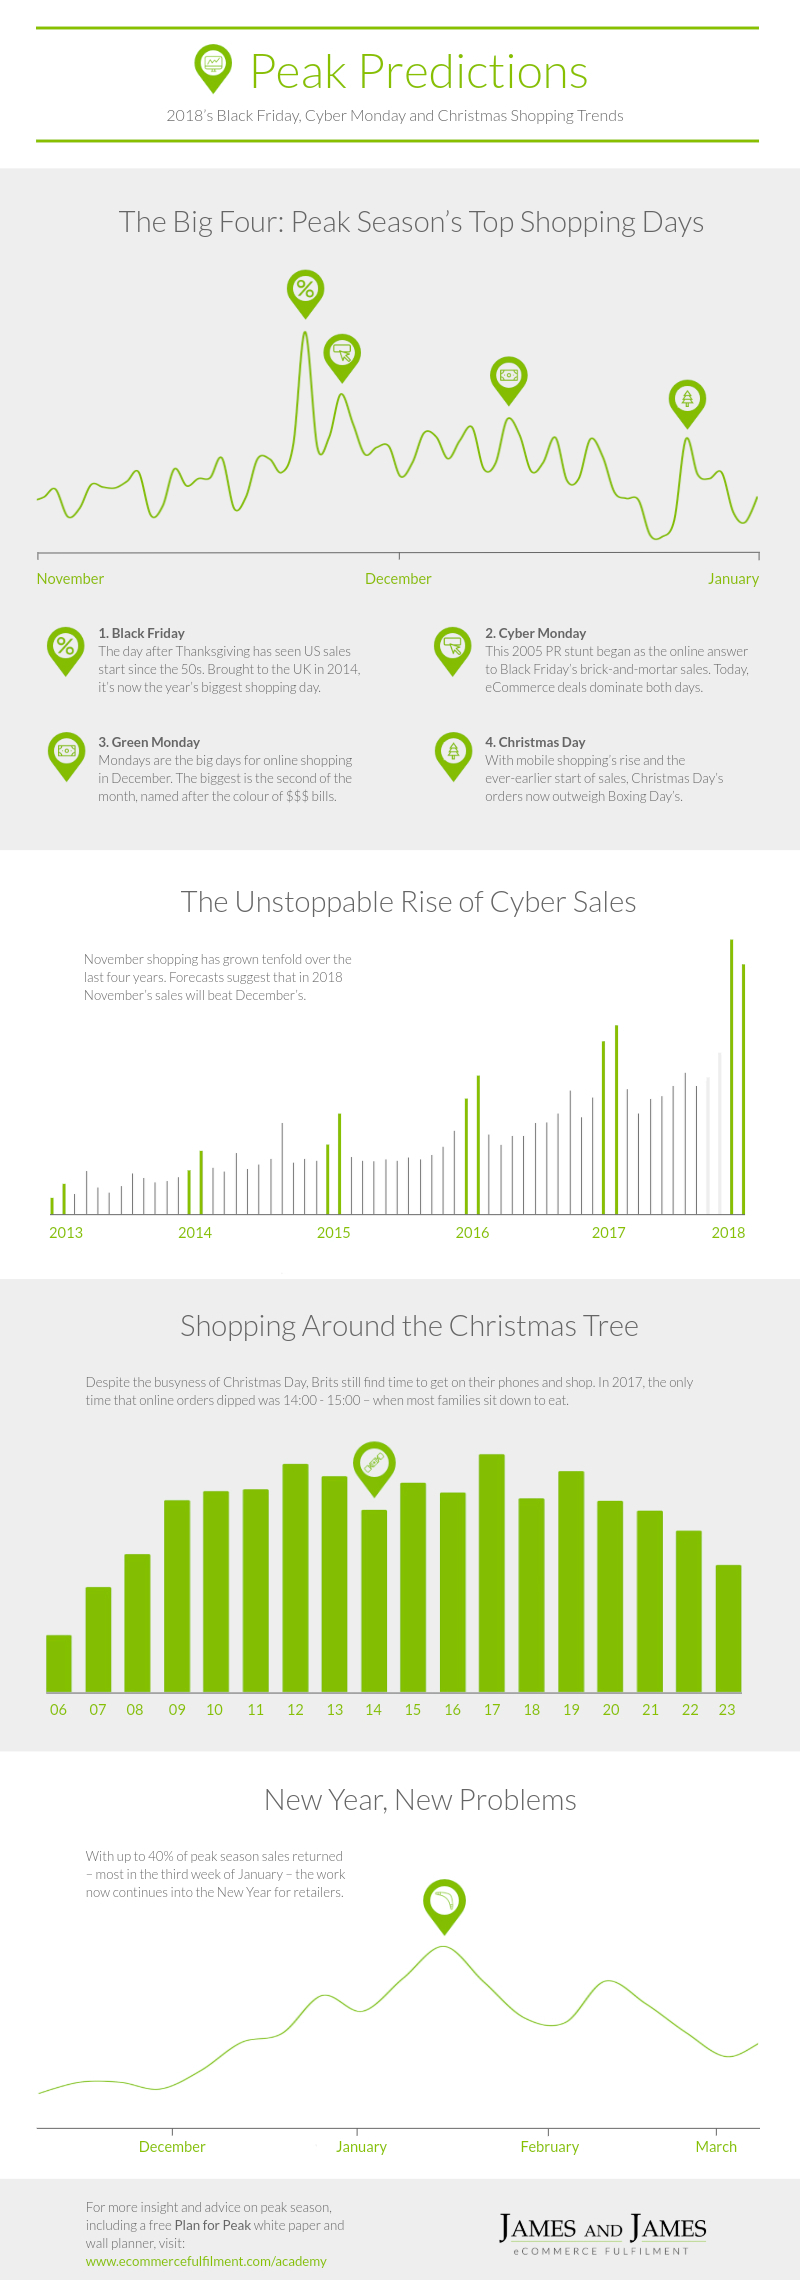 2018 Holidays Sales Forecast: November Online Sales Will Eclipse December Totals This Year